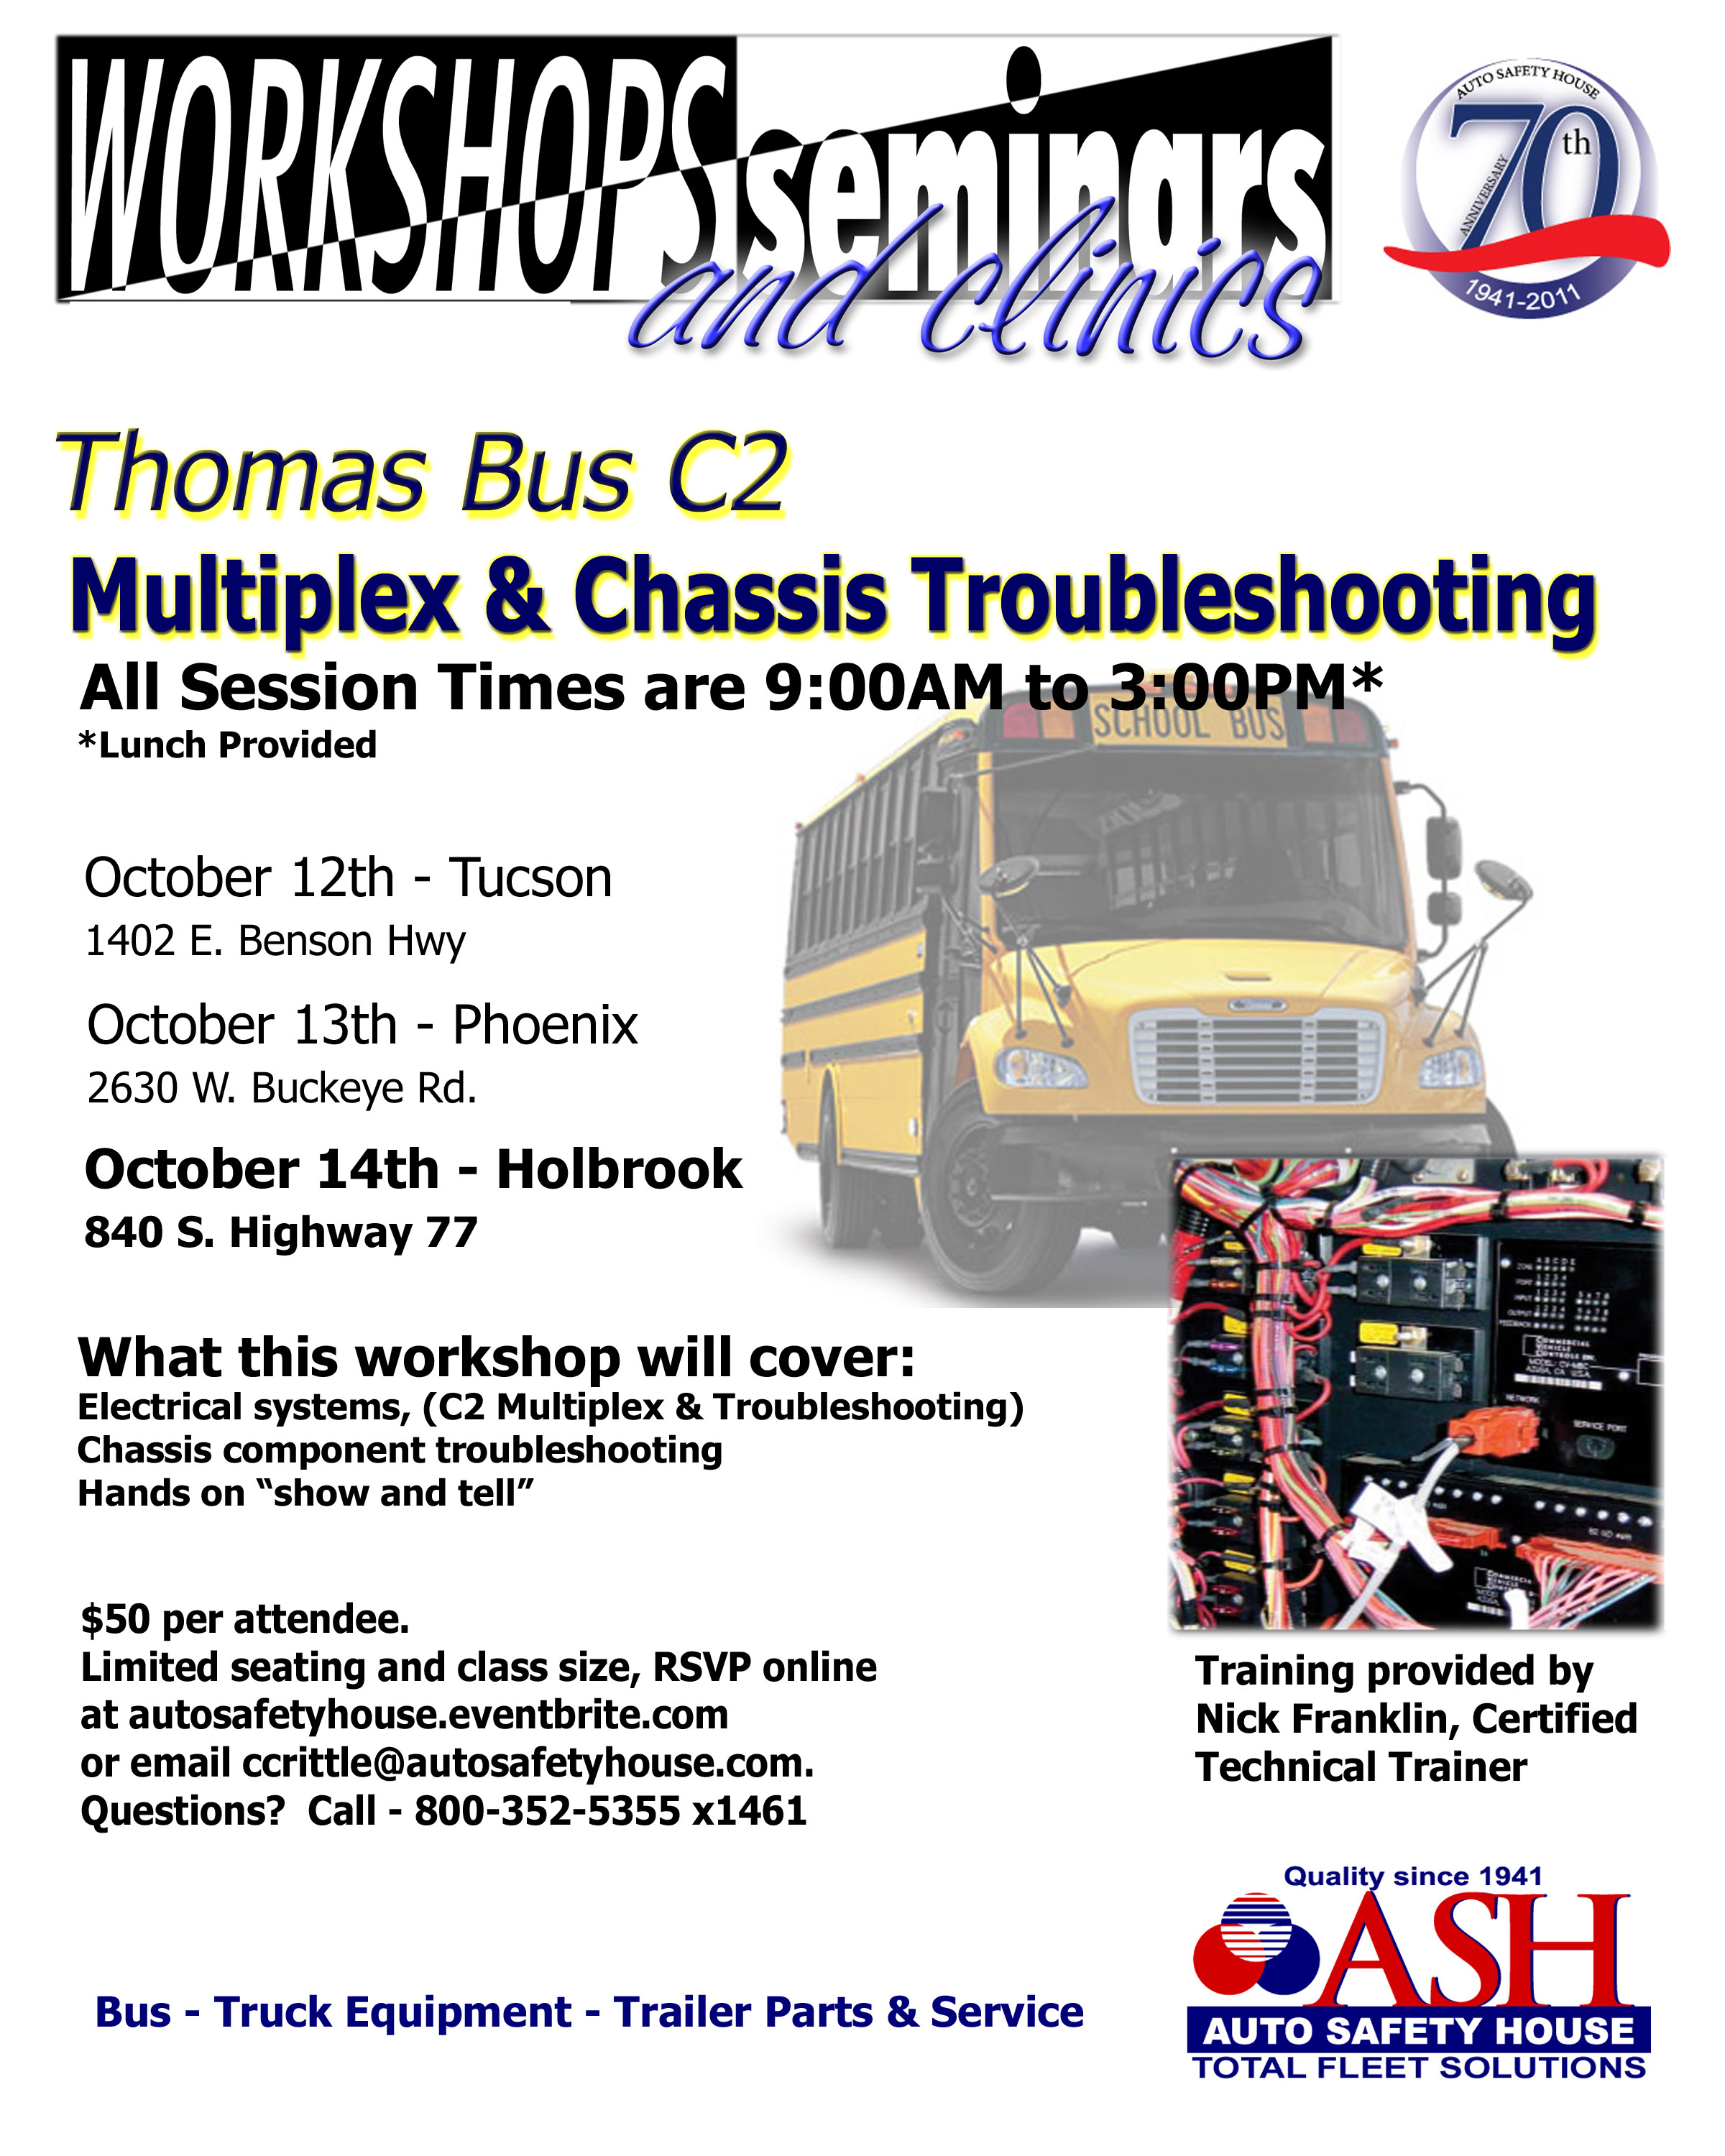 Thomas Built c2 Multiplex Workshop - at Auto Safety House in Tucson October 12th, 2011 from 9am to 3pm. Cost is $50 per attendee, and payment can be made by phone at 1-800-352-5355 extension 1461 or in the mail to Auto Safety House - Attention Cora: 2630 West Buckeye Road, Phoenix, Arizona 85009.